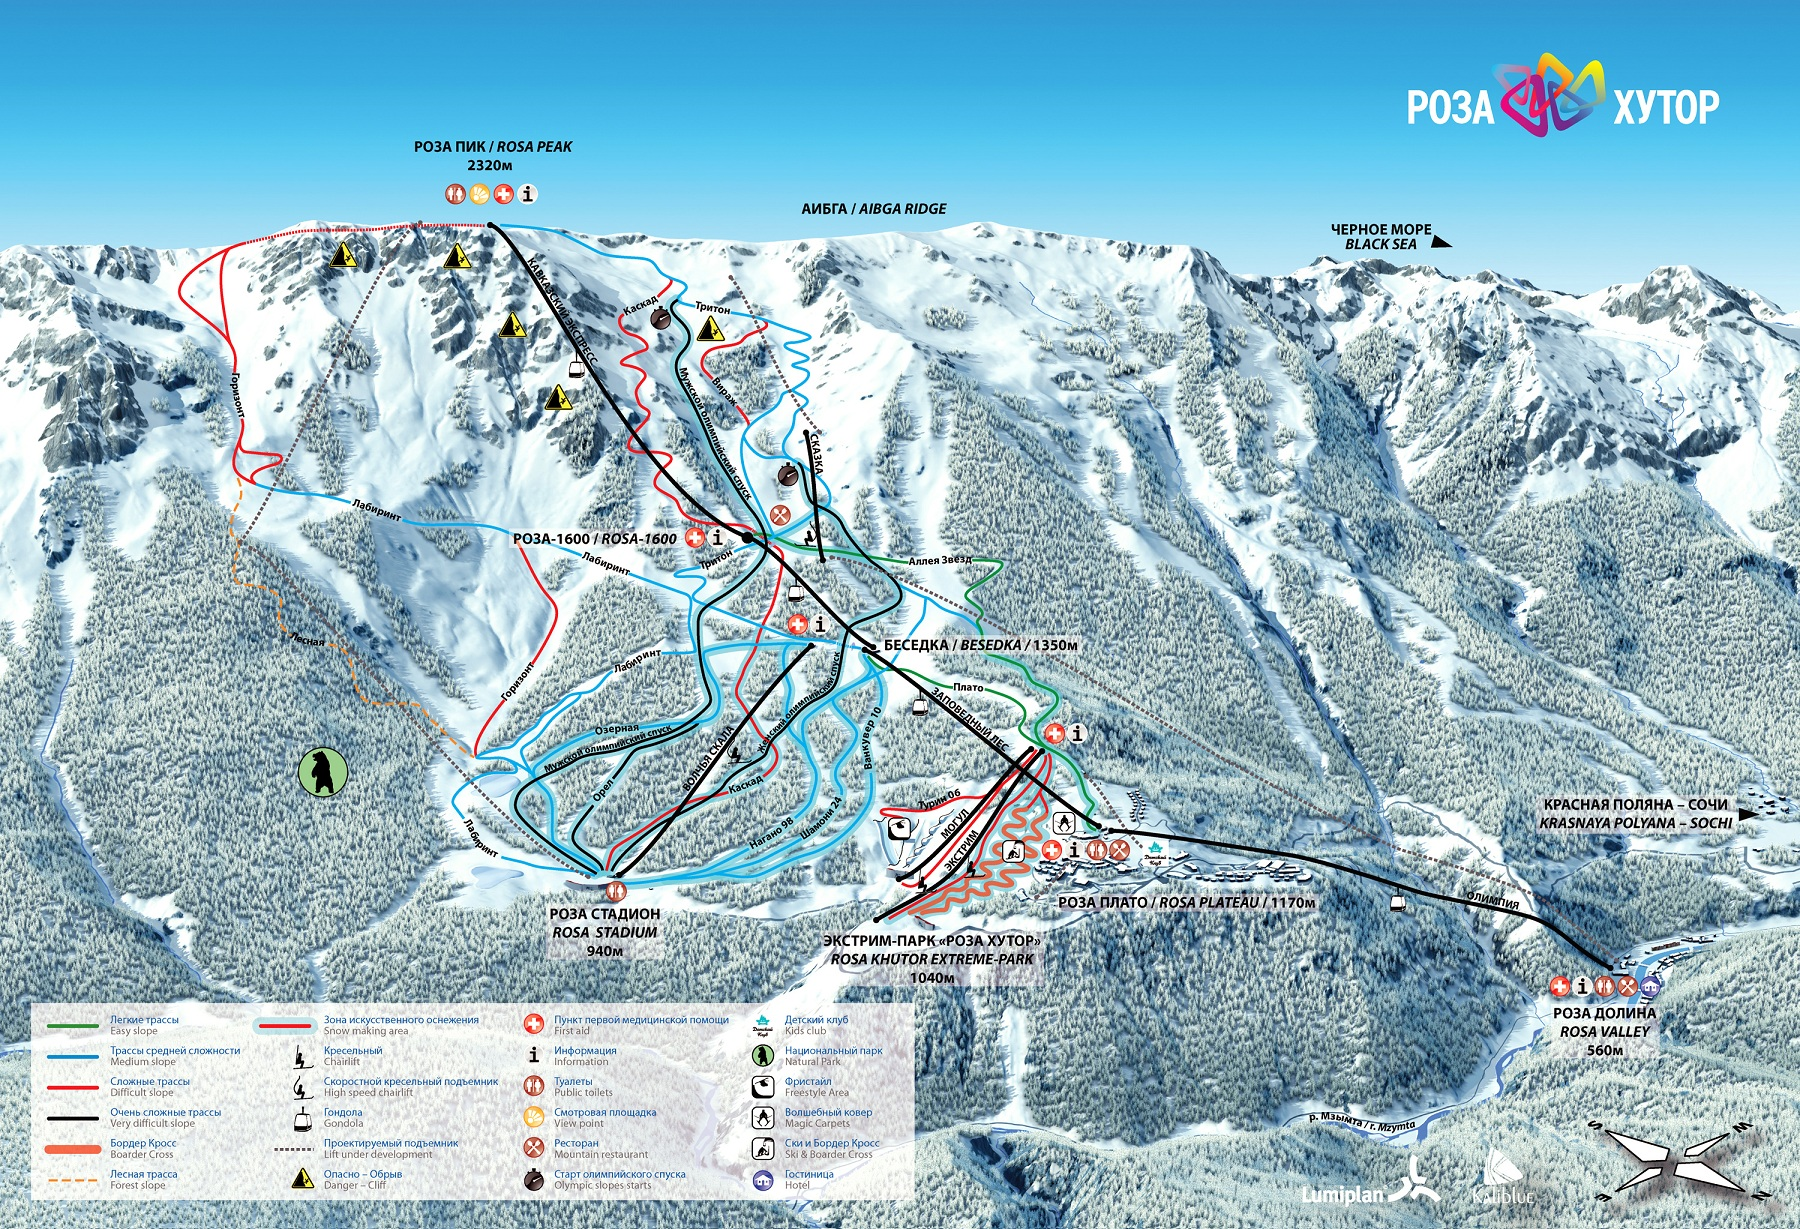 The Rosa Khotor ski area map. Looks fun but will anyone be skiing there in the future?